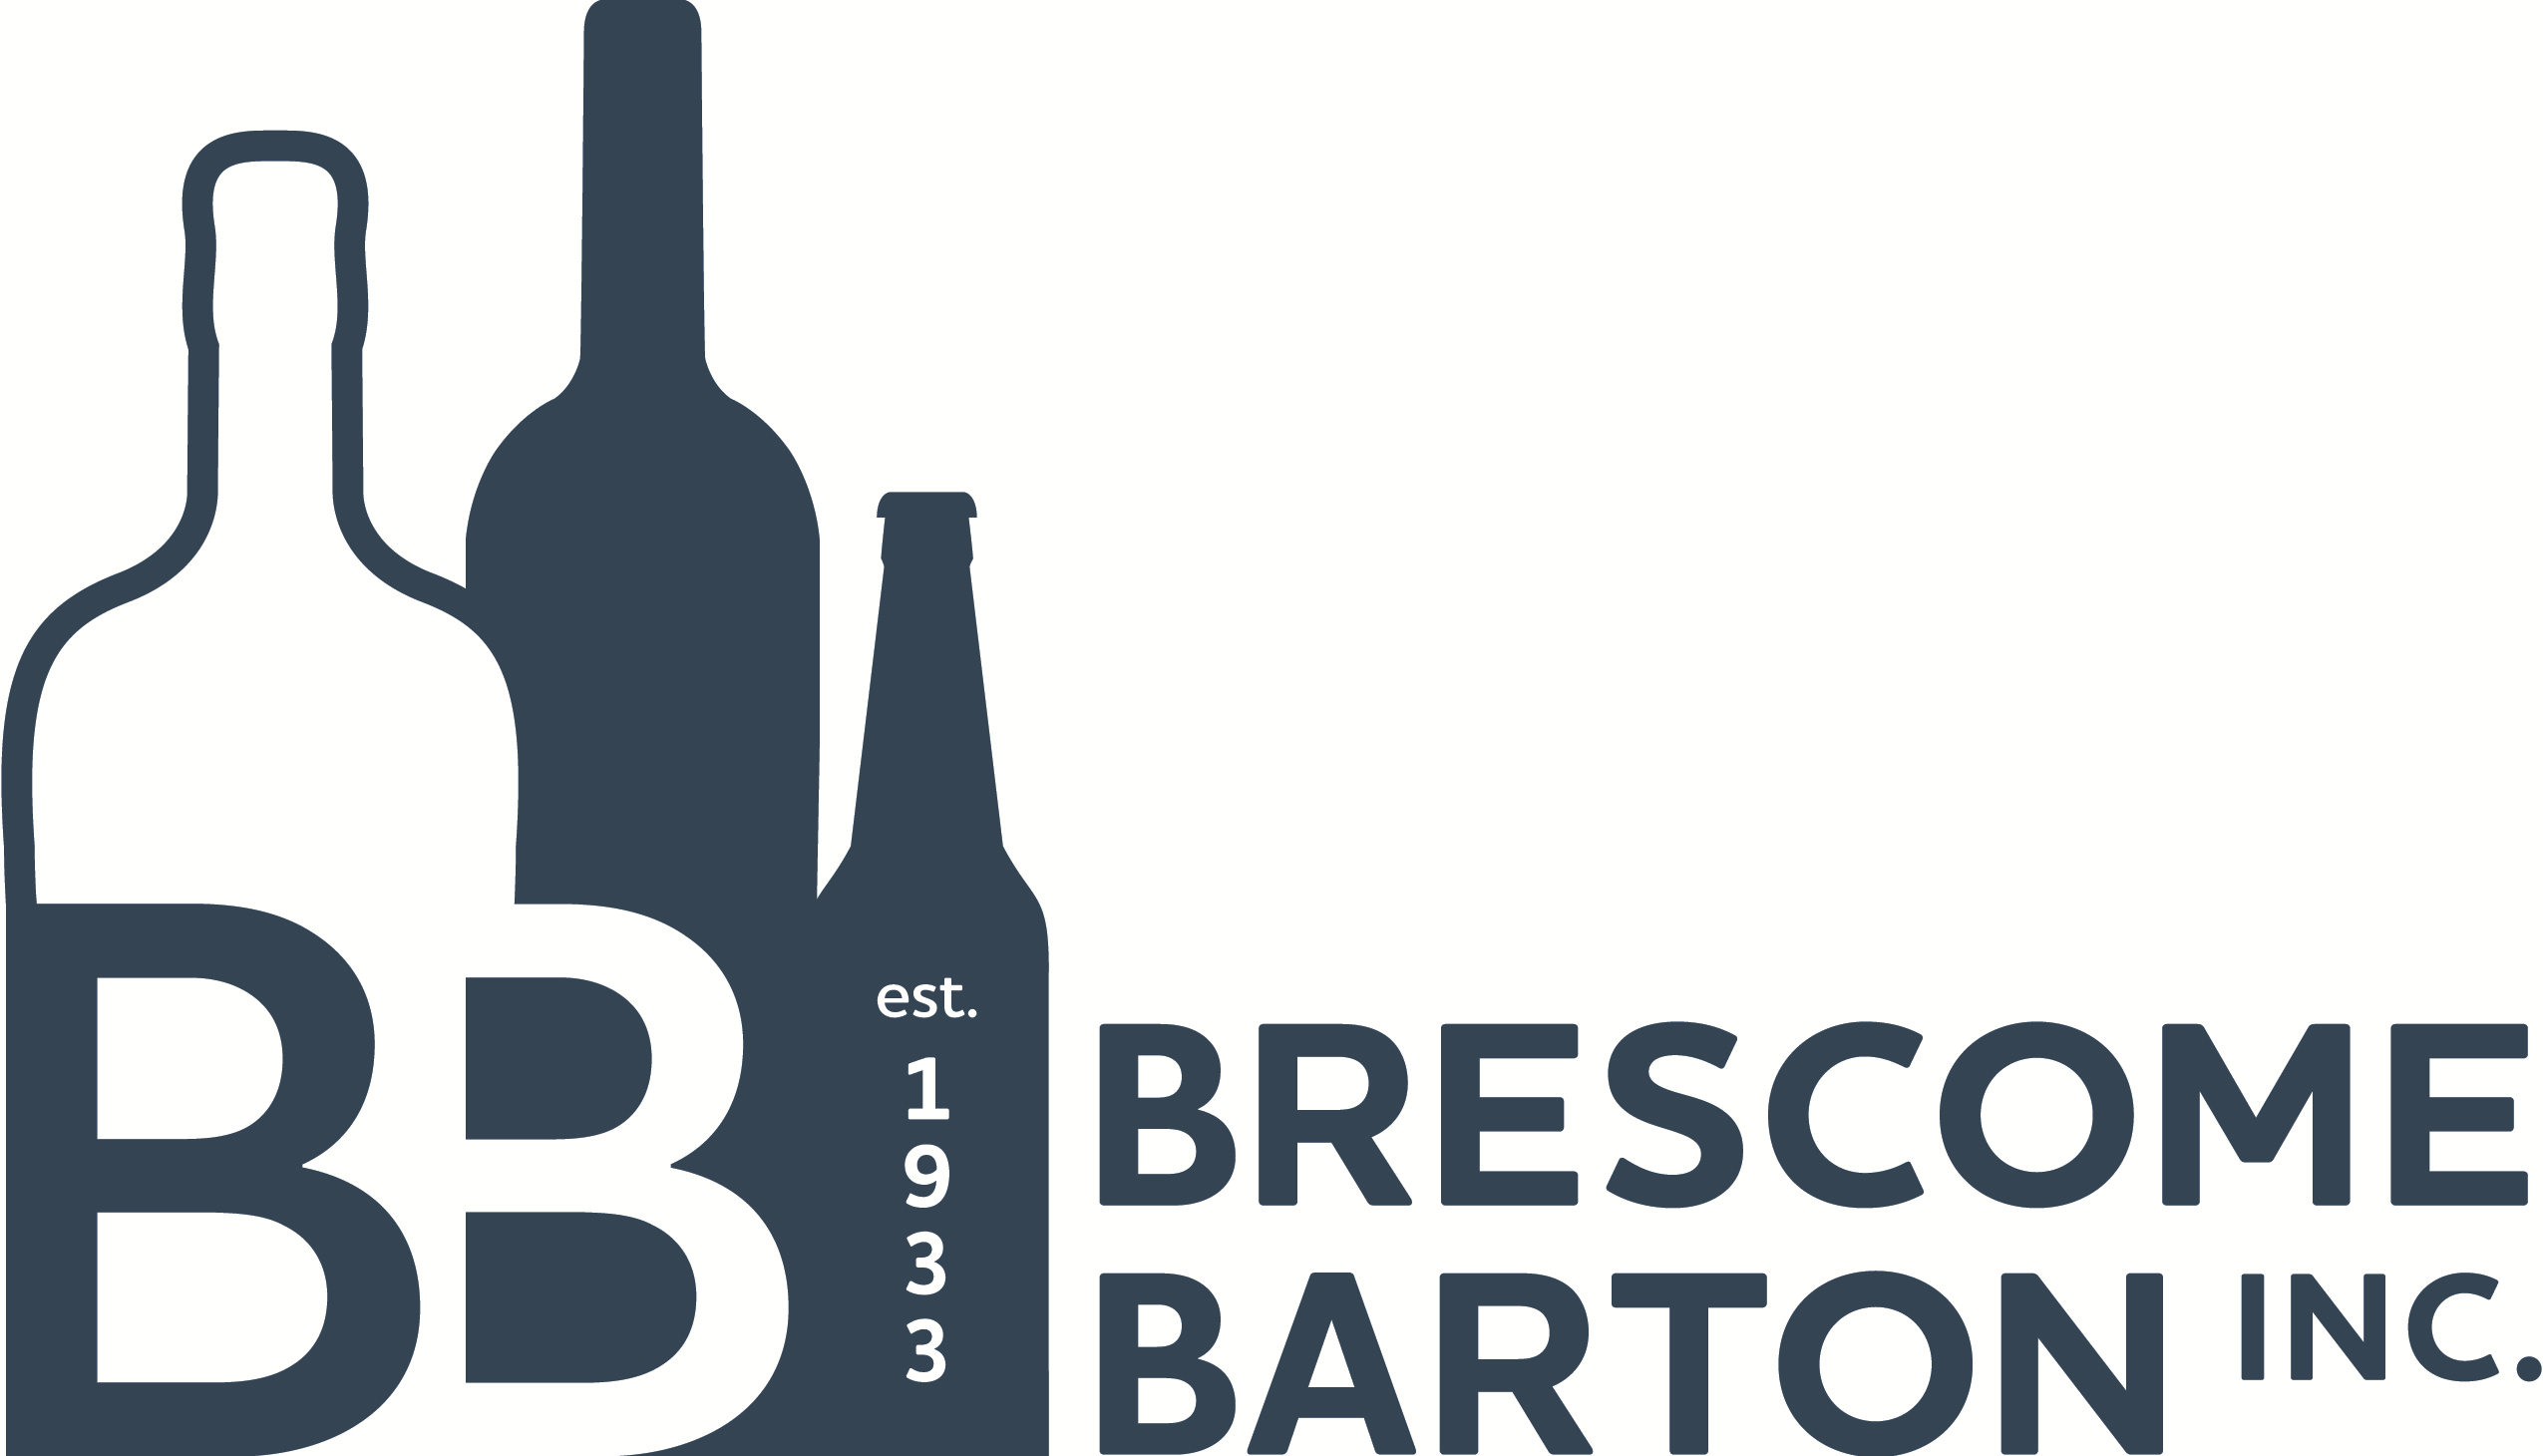 October 7, 2019: Brescome Barton Second Fall Trade Tasting